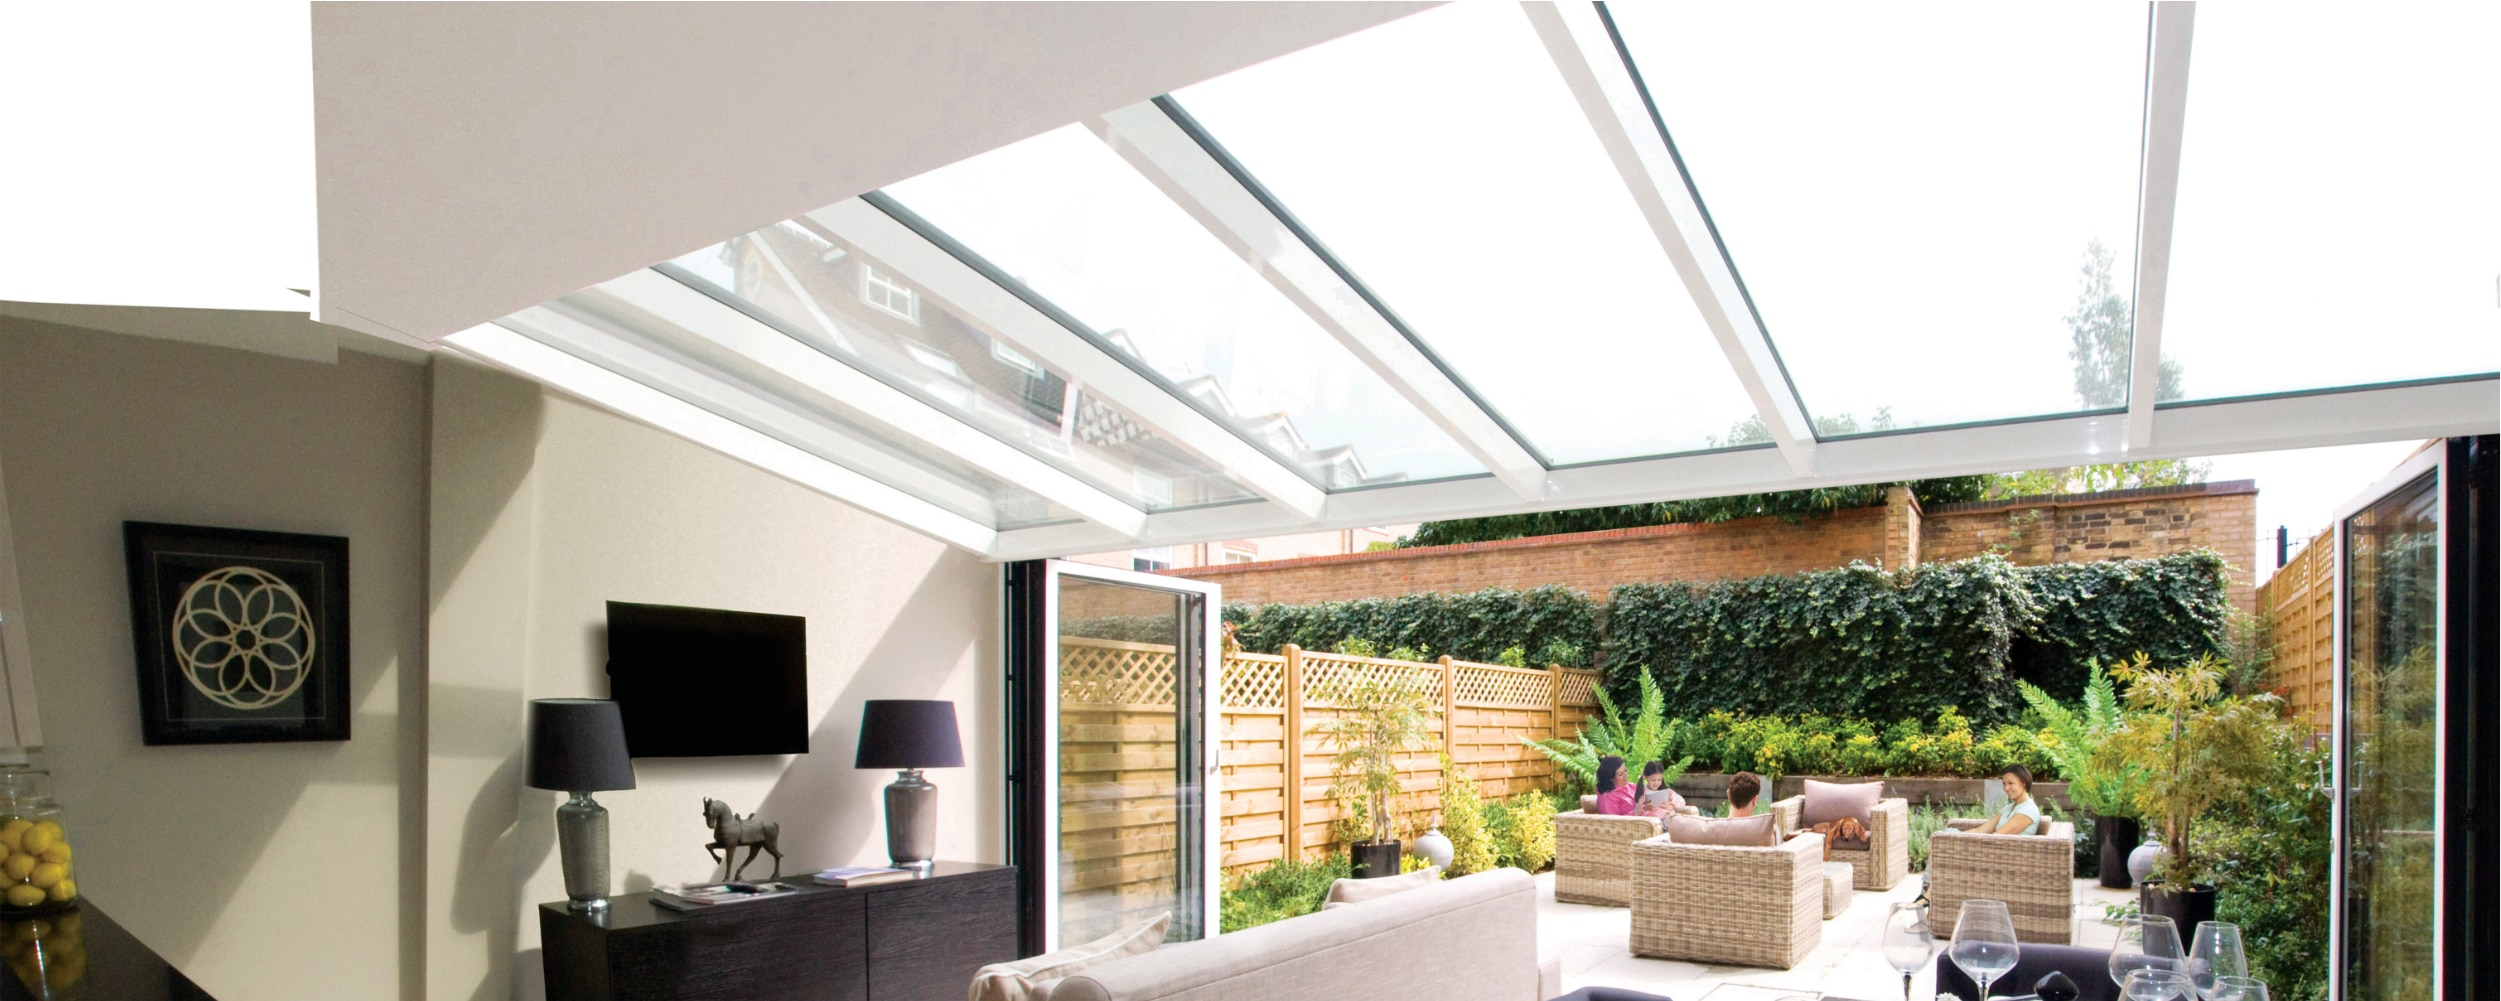 Bespoke structural glass roof installation in spectacular room setting